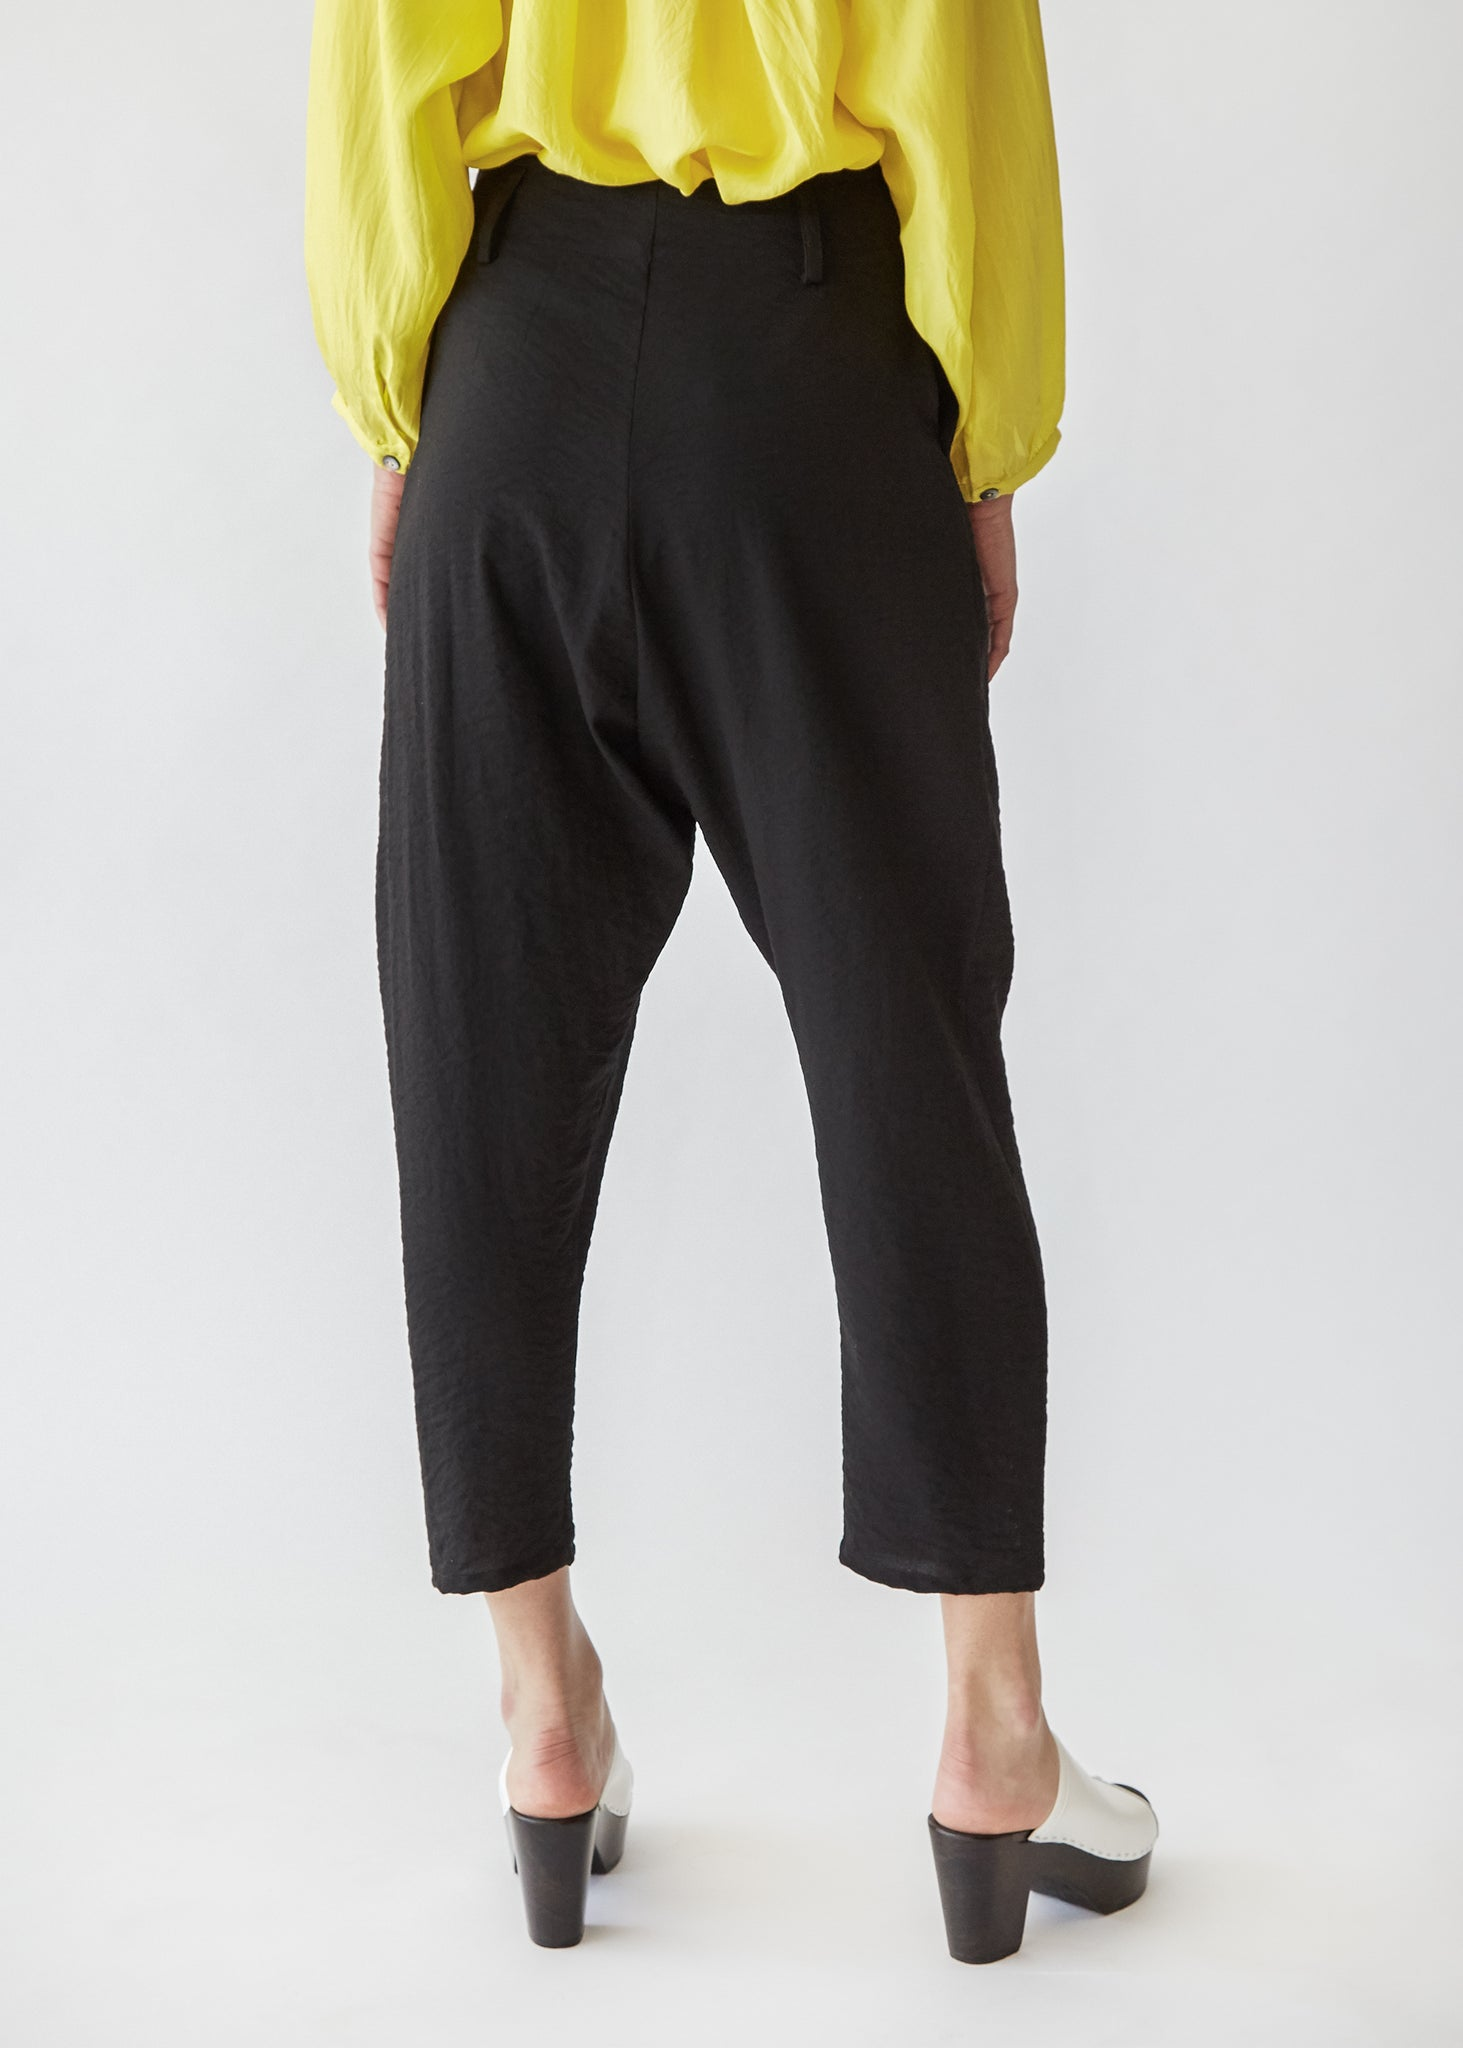 Sorrento Trouser in Black Crinkle